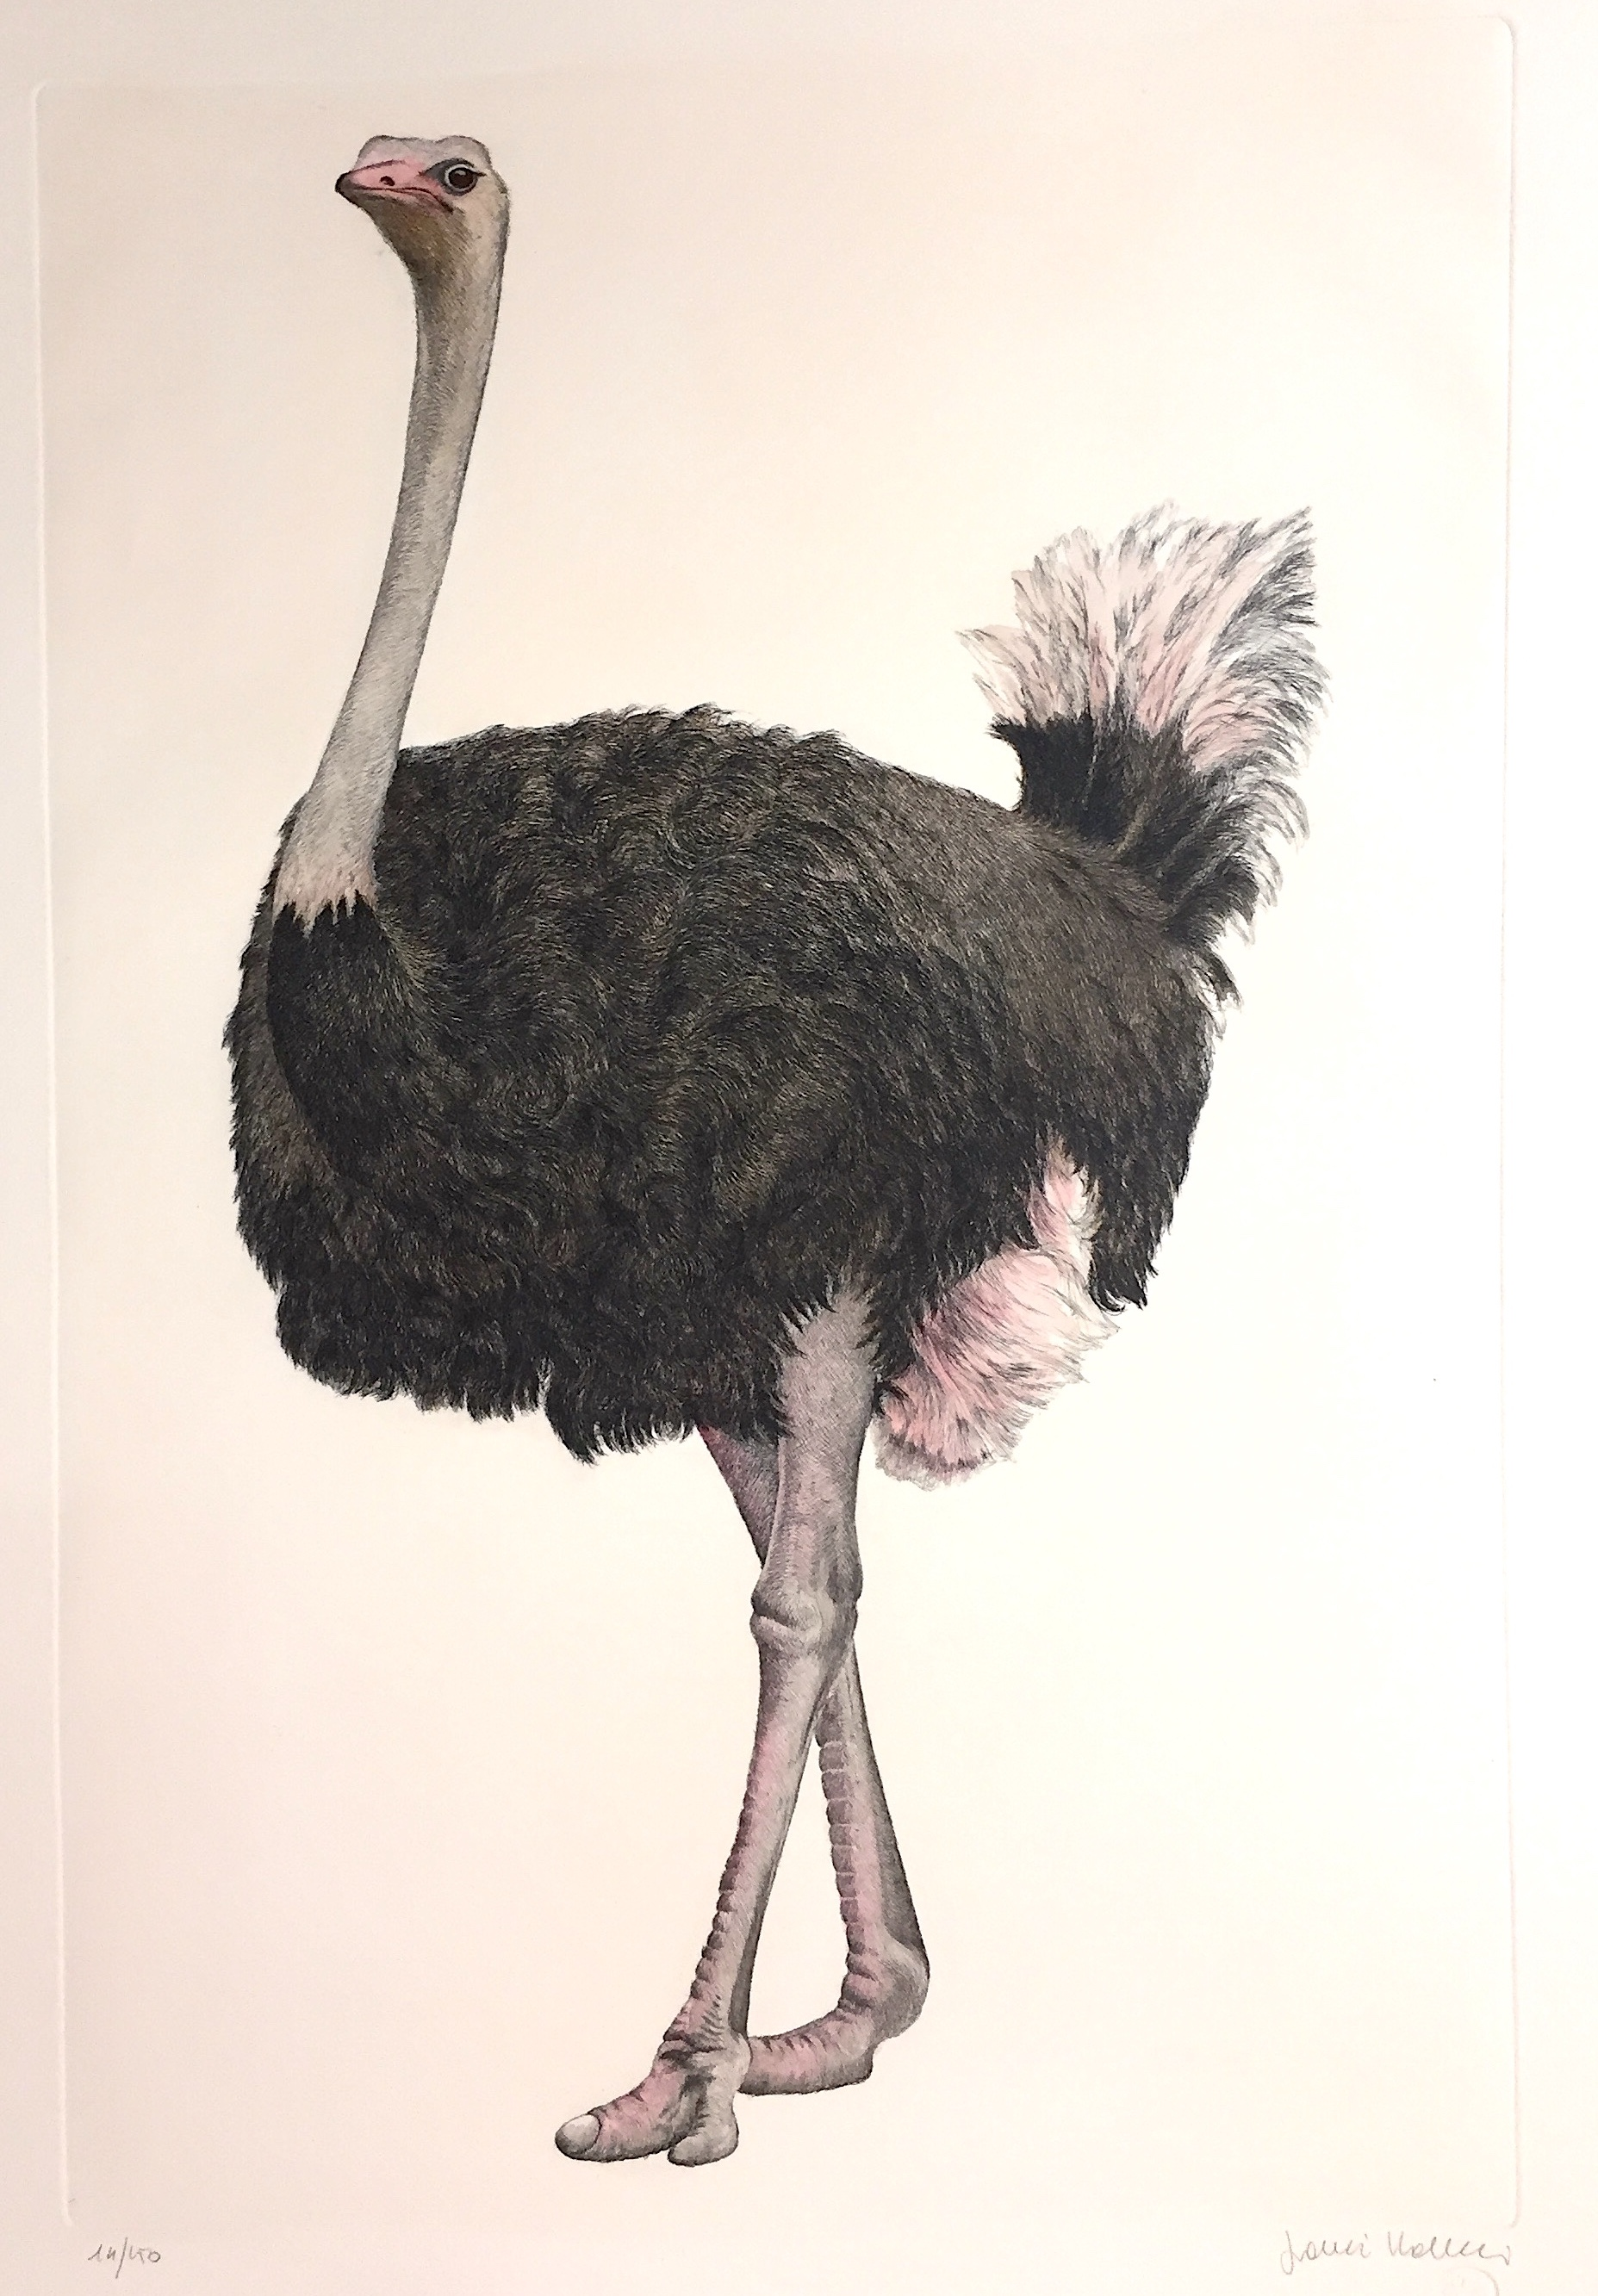 ritocc___art_728_a_the_ostrich_measure_image_30_x_50_cm_measure_papaer_50_x_70___